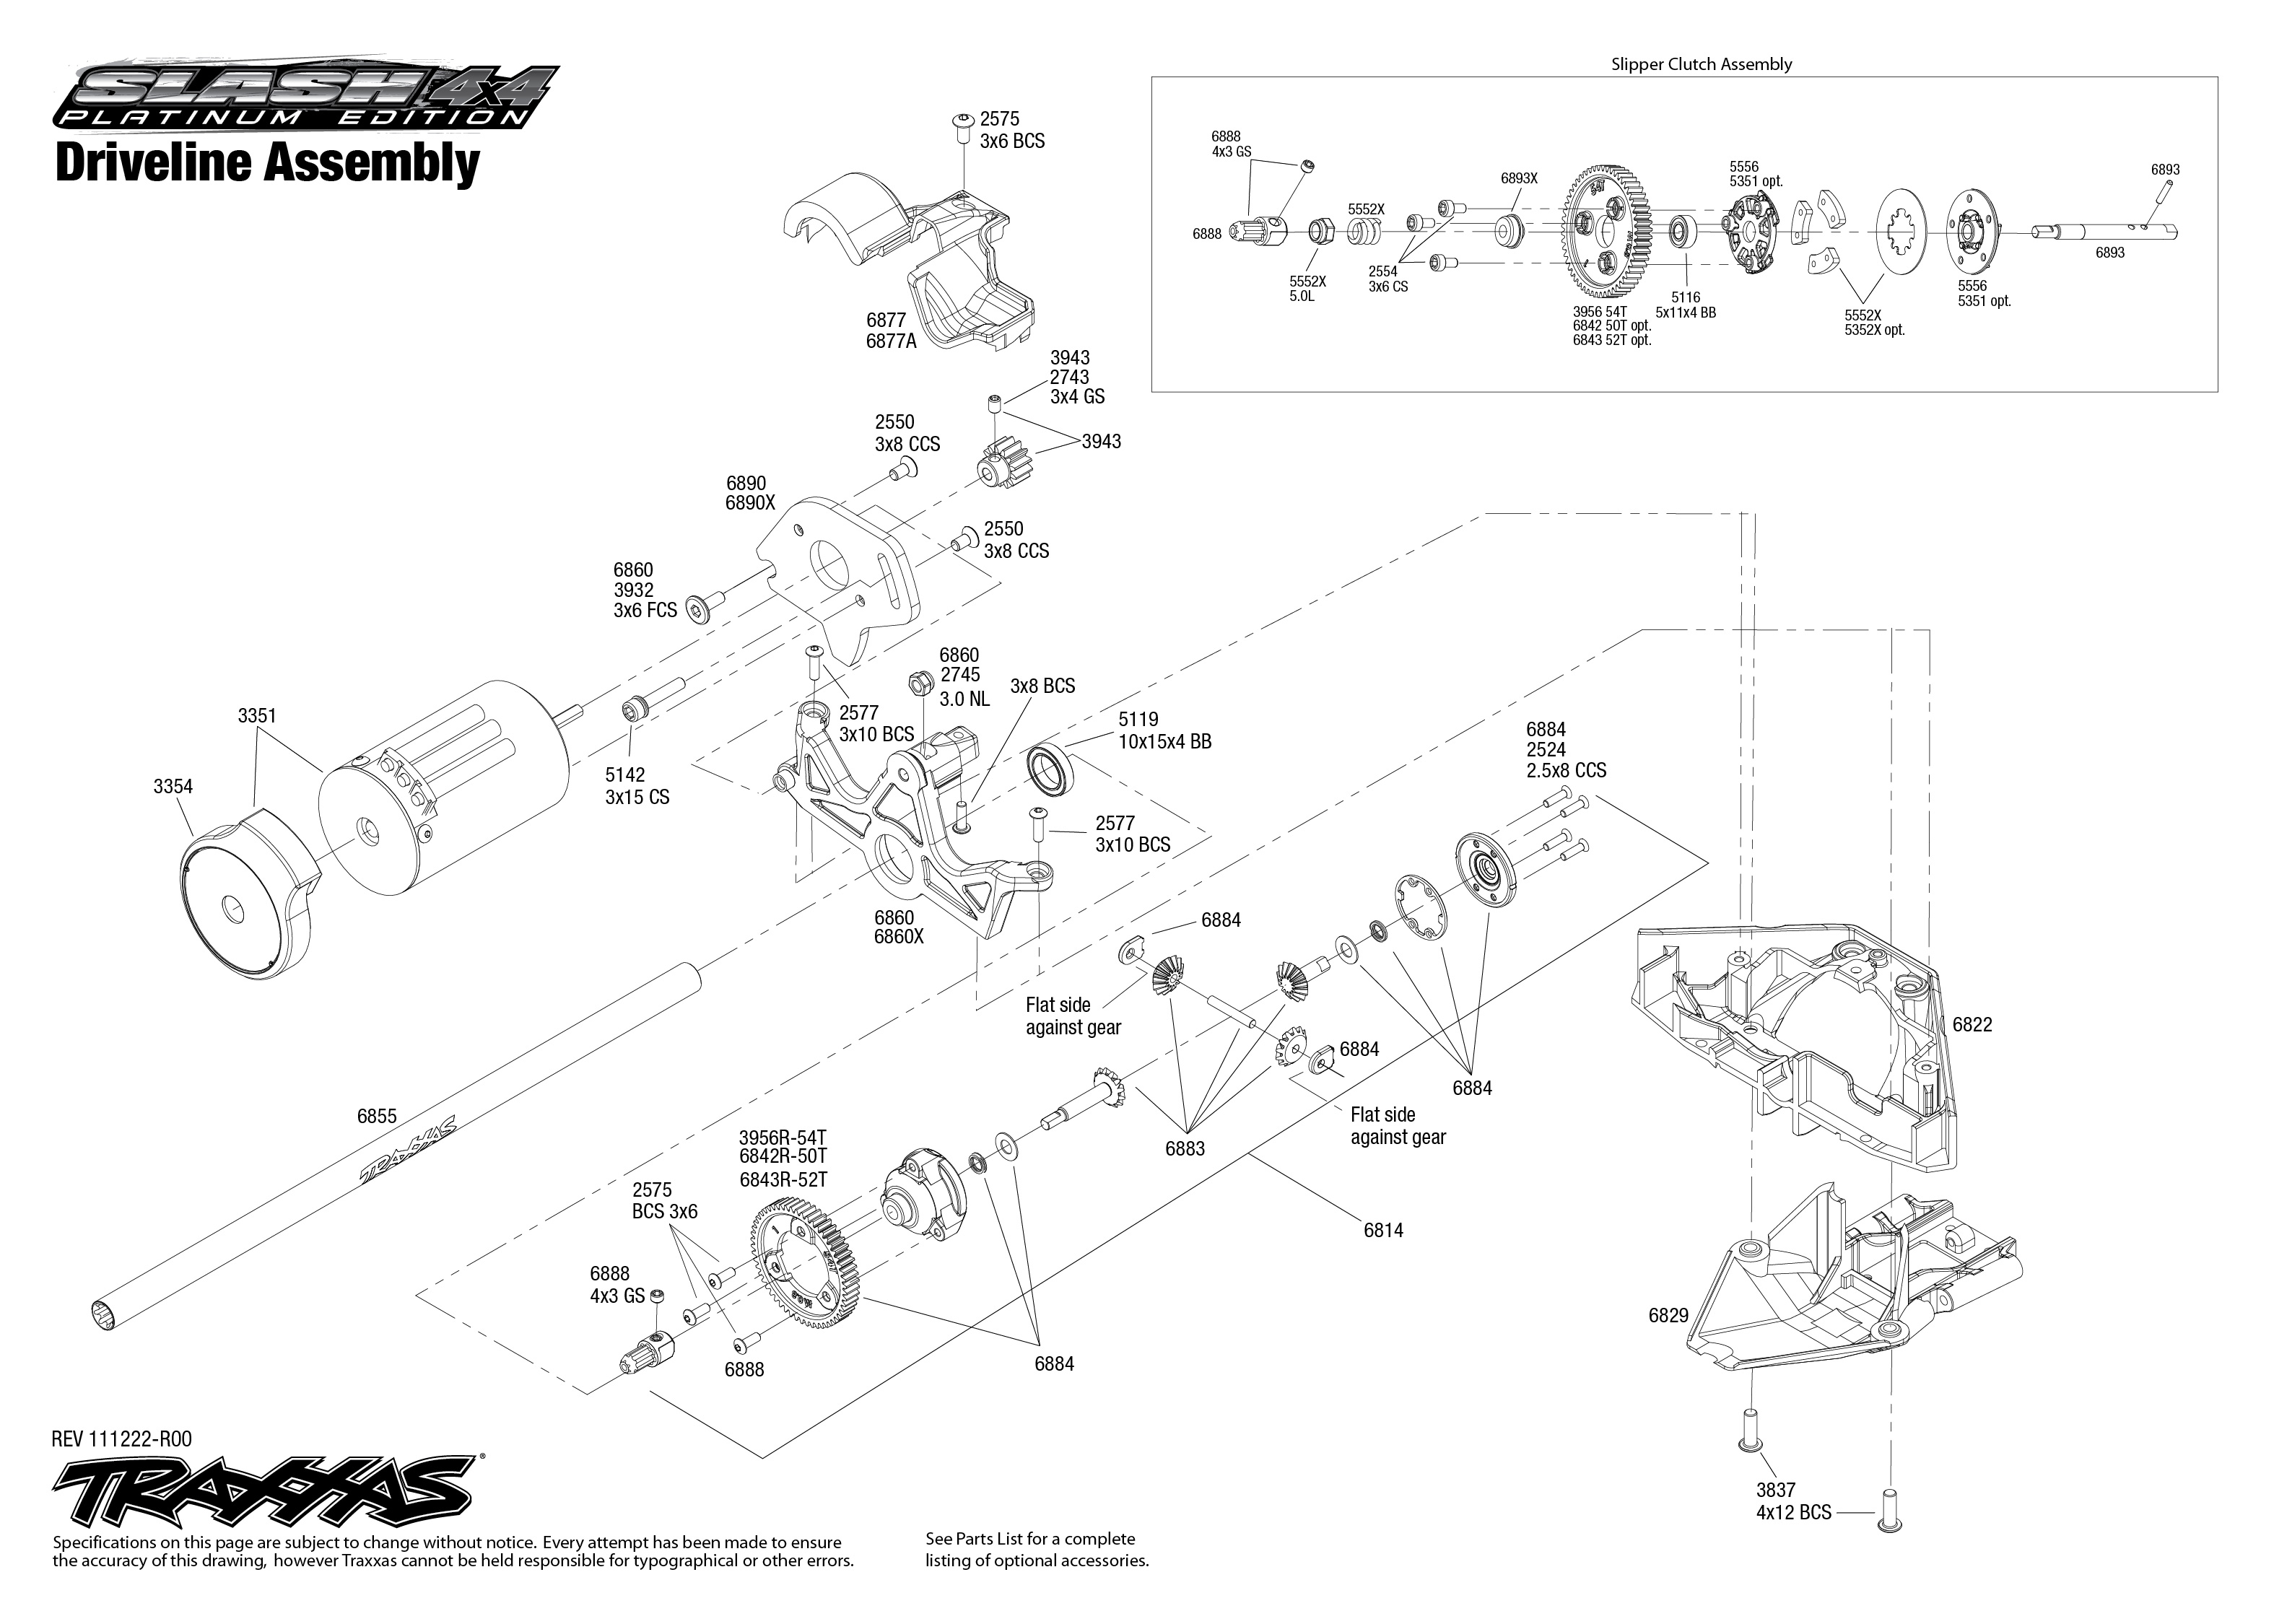 Showthread likewise Traxxas Summit Wiring as well Traxxas St ede Vxl Diagram moreover Wiring Traxxas St ede likewise 5507Front. on traxxas stampede 4x4 vxl parts diagram